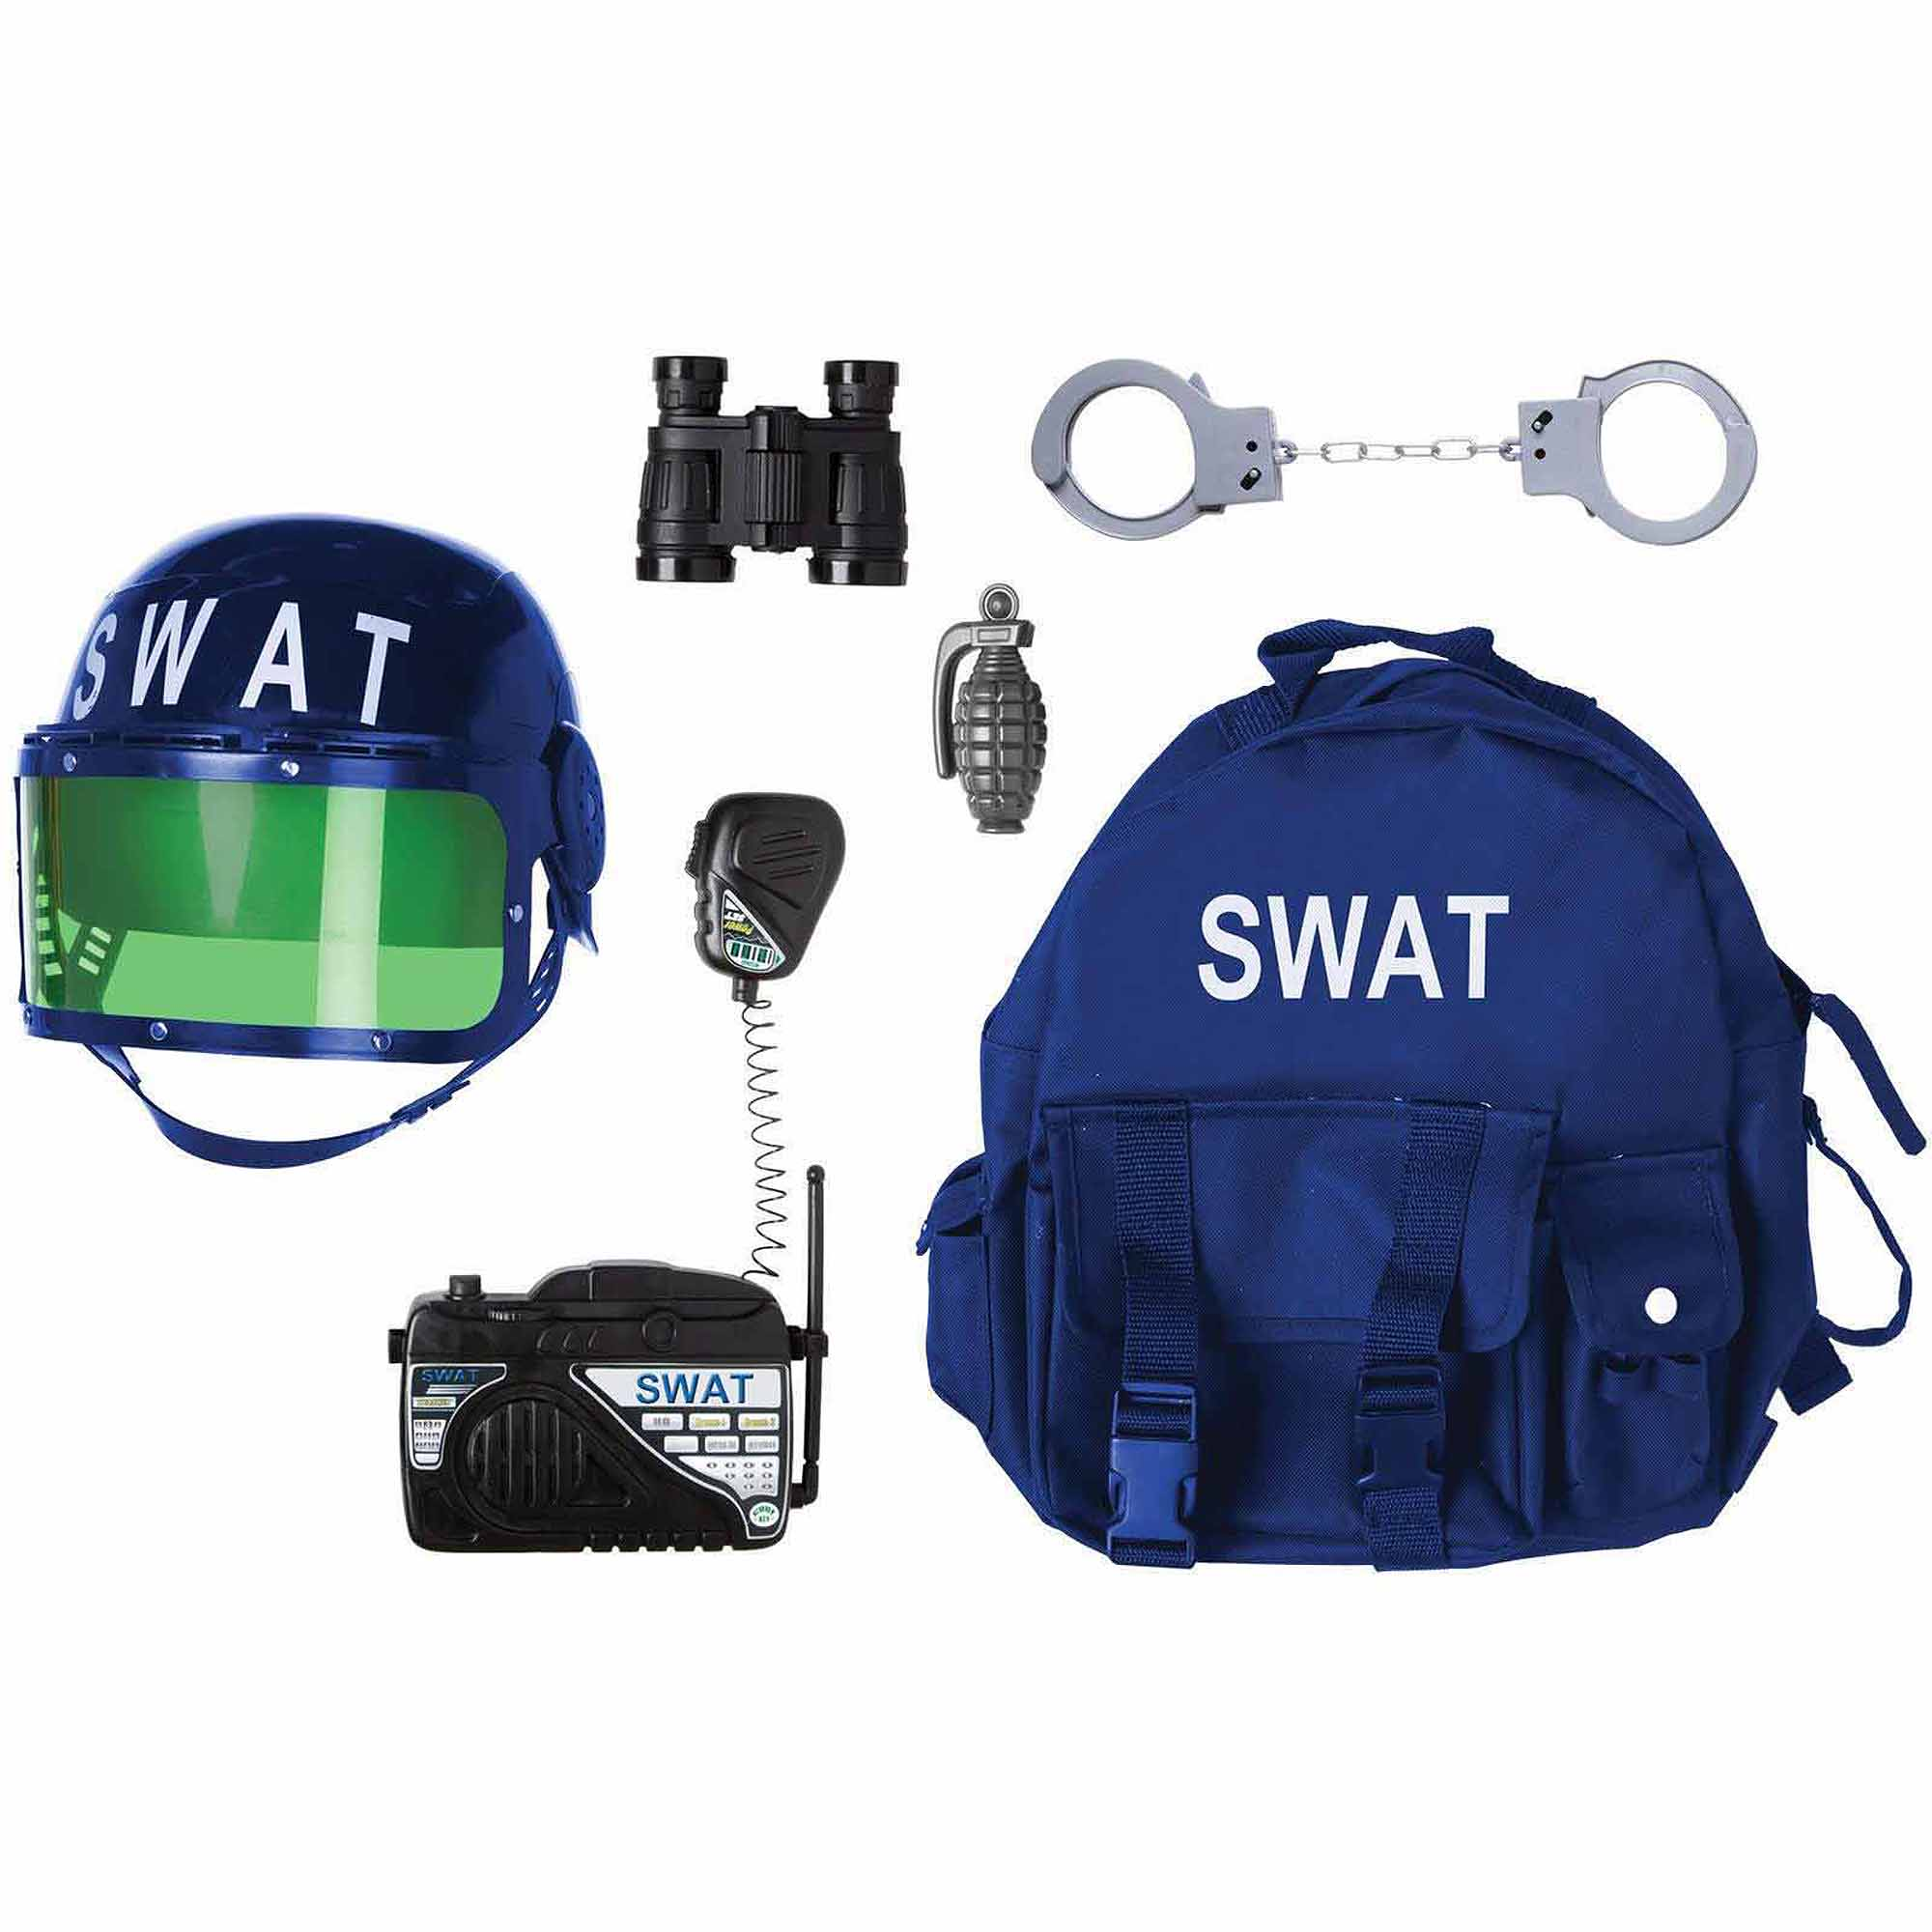 Gear to Go SWAT Adventure Play Set Halloween Costume Accessory